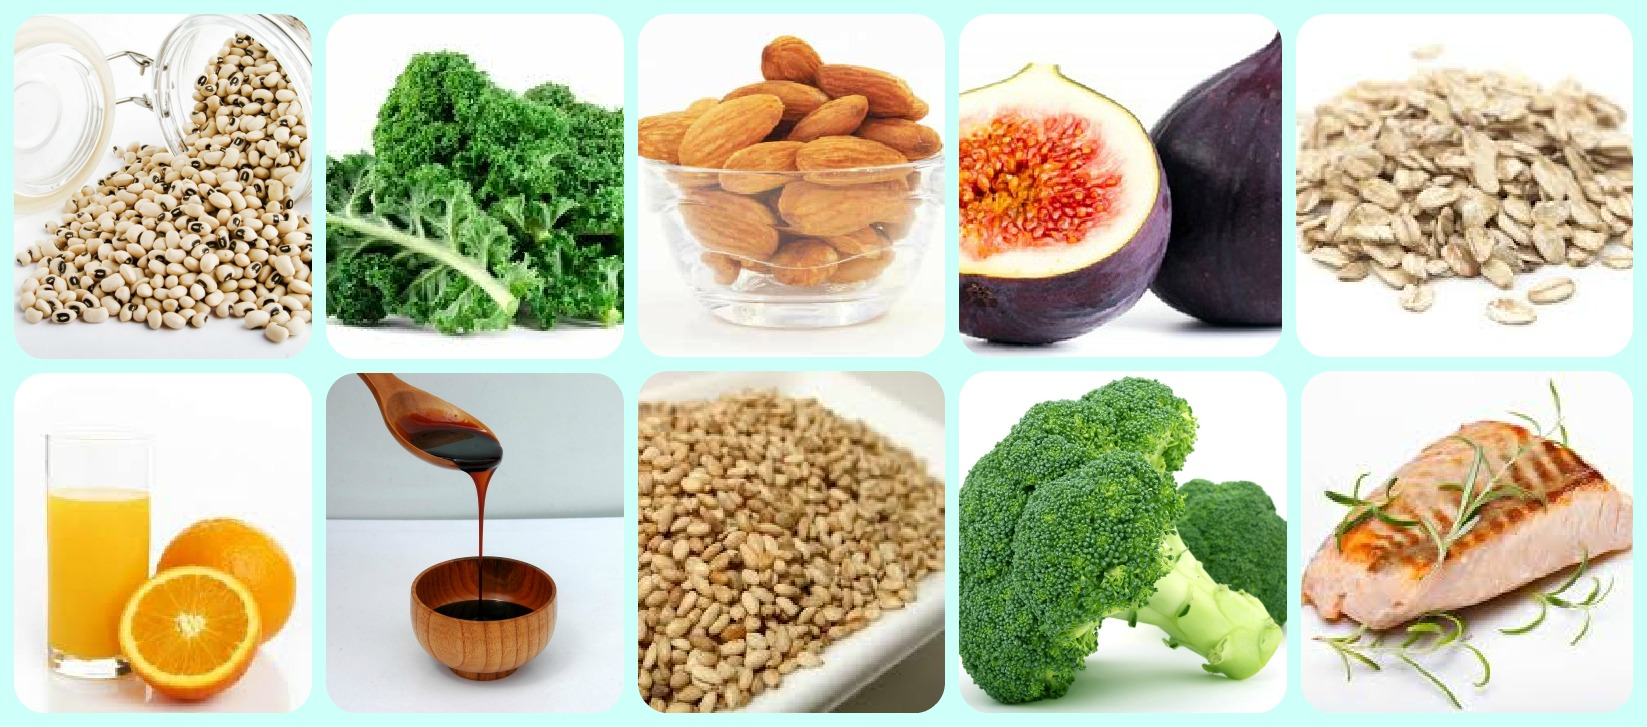 What Foods Can You Get Calcium From